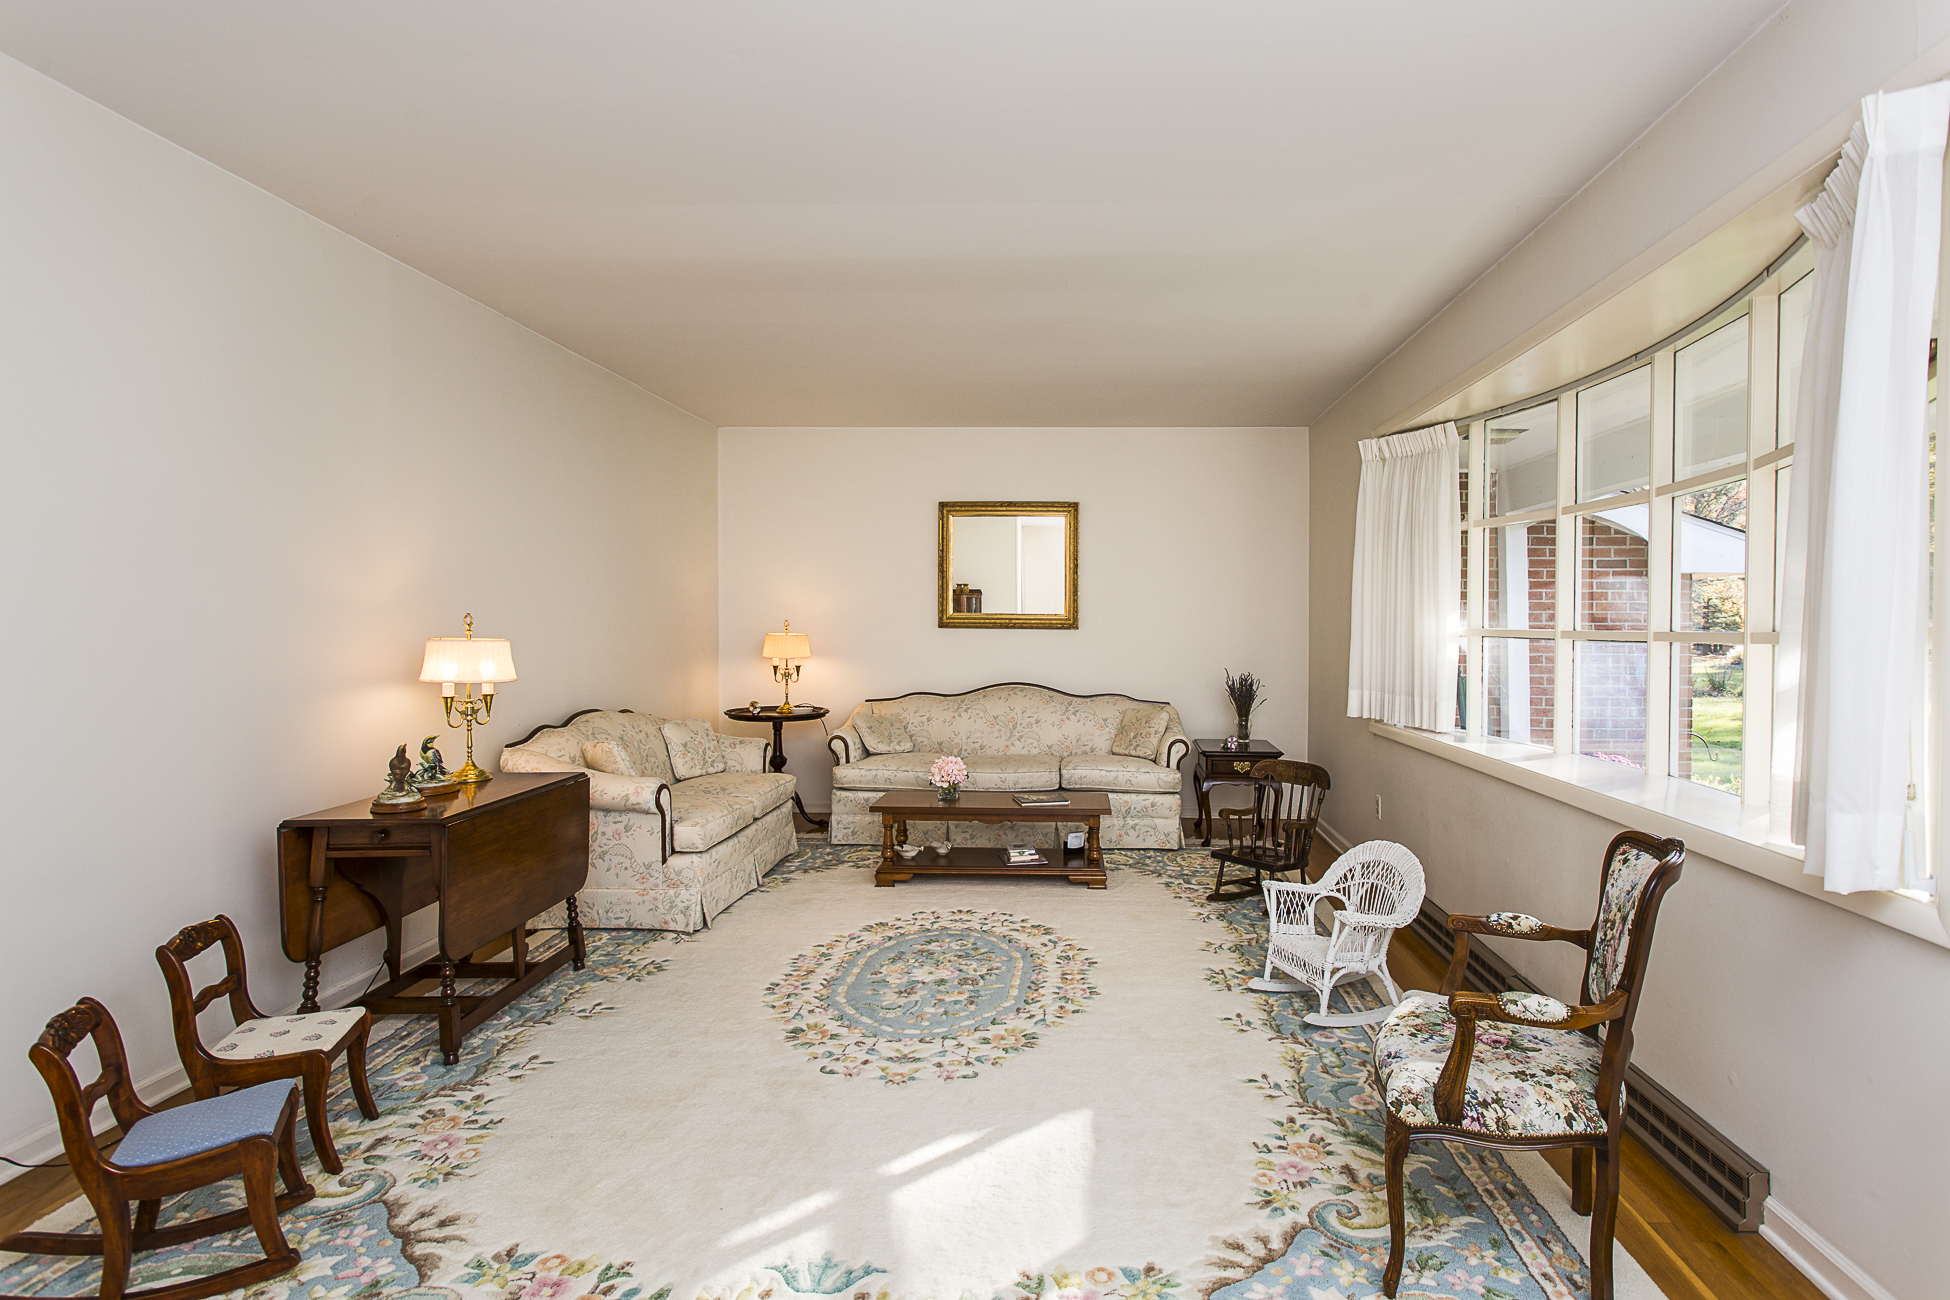 Additional photo for property listing at Luxury On The Water - Hopewell Township 57 West Shore Drive Pennington, Нью-Джерси 08534 Соединенные Штаты